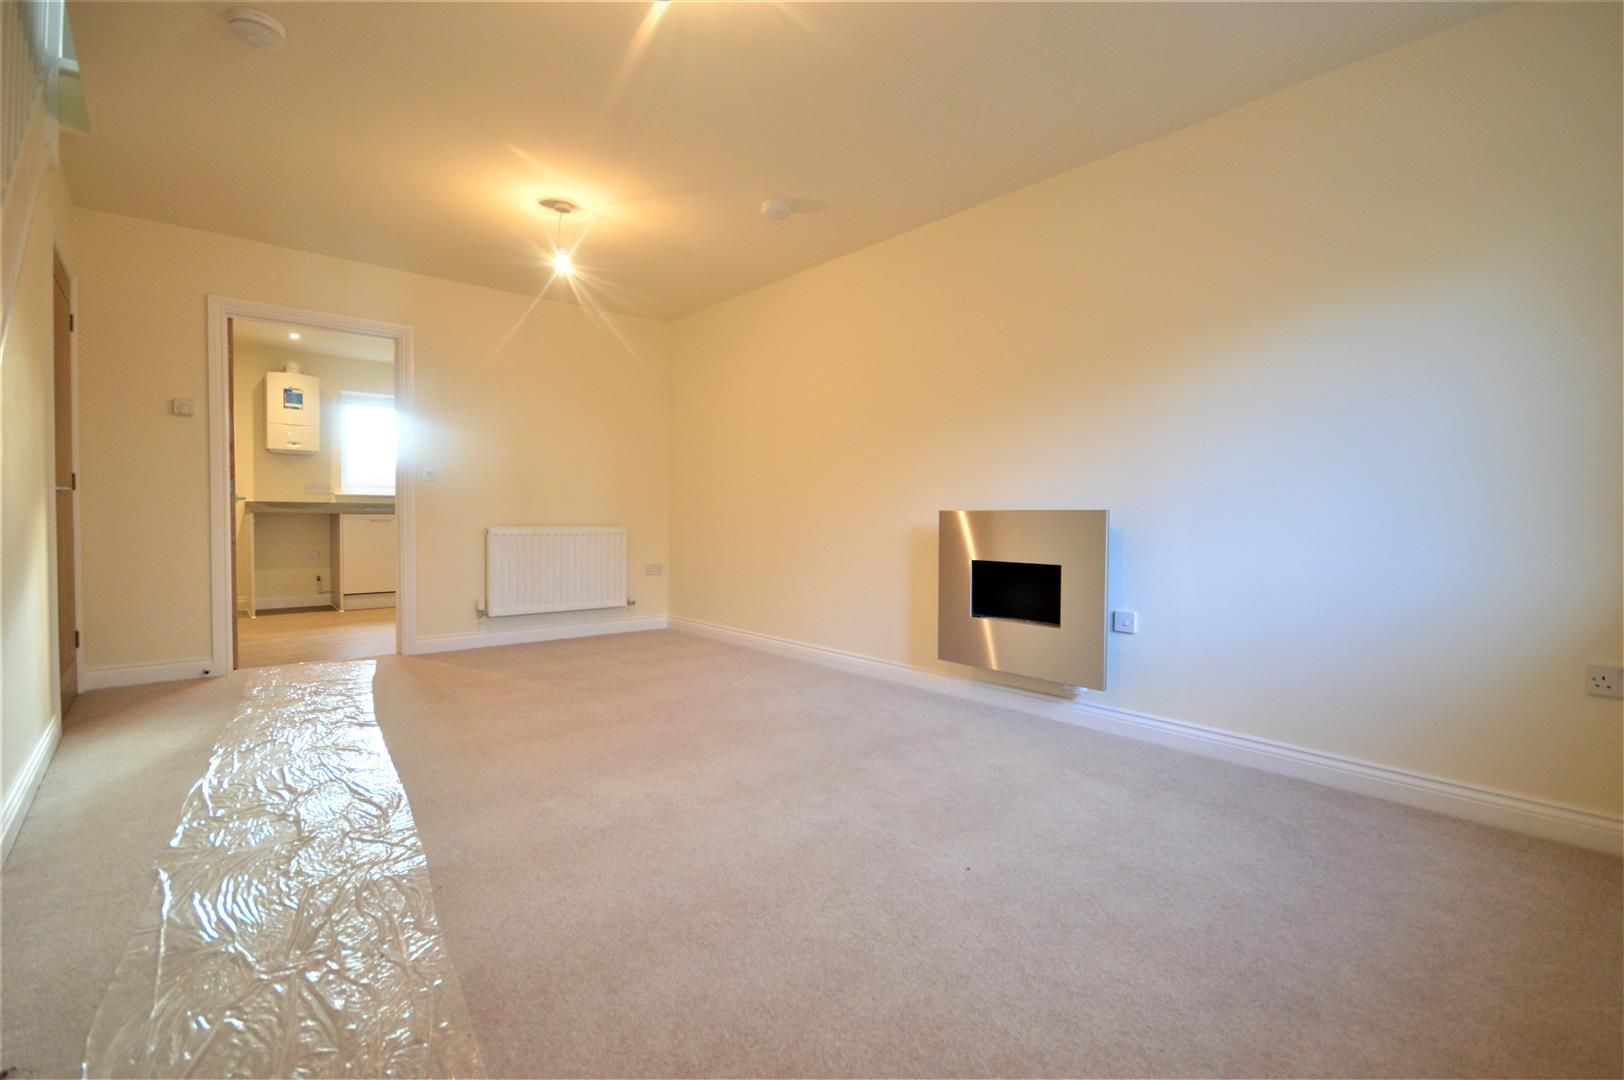 2 bed terraced for sale in Kingsland  - Property Image 4